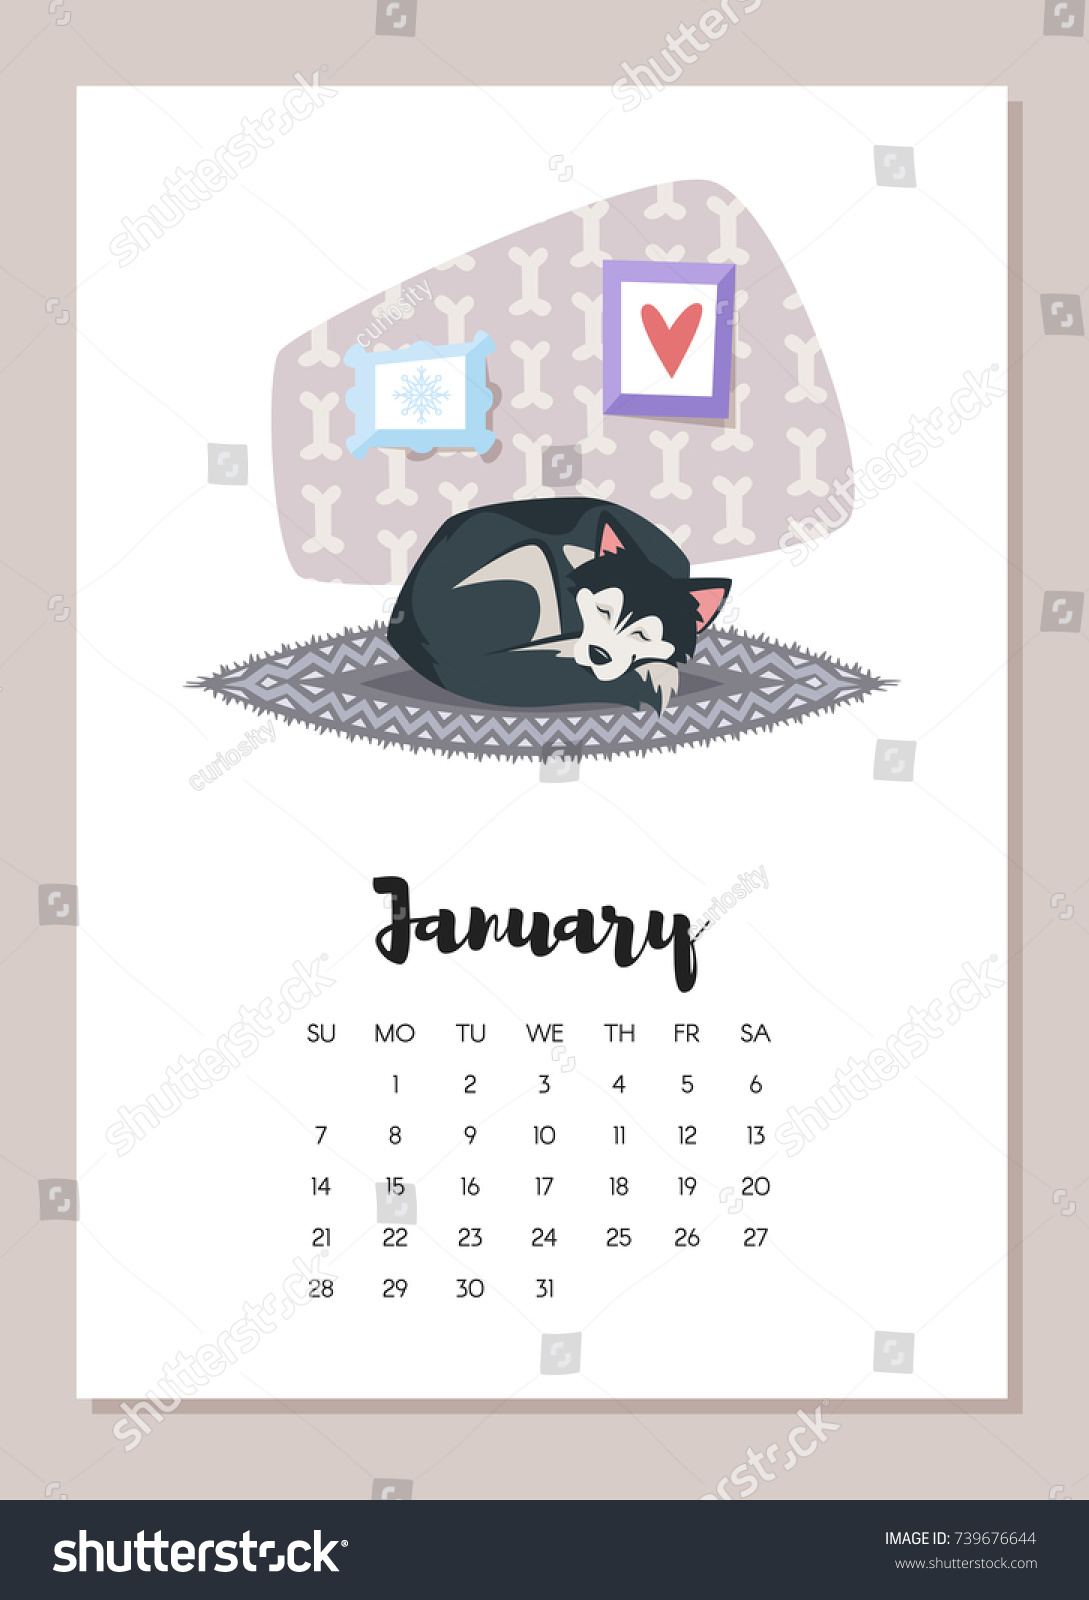 vector cartoon style illustration of january dog 2018 year calendar page isolated on white background